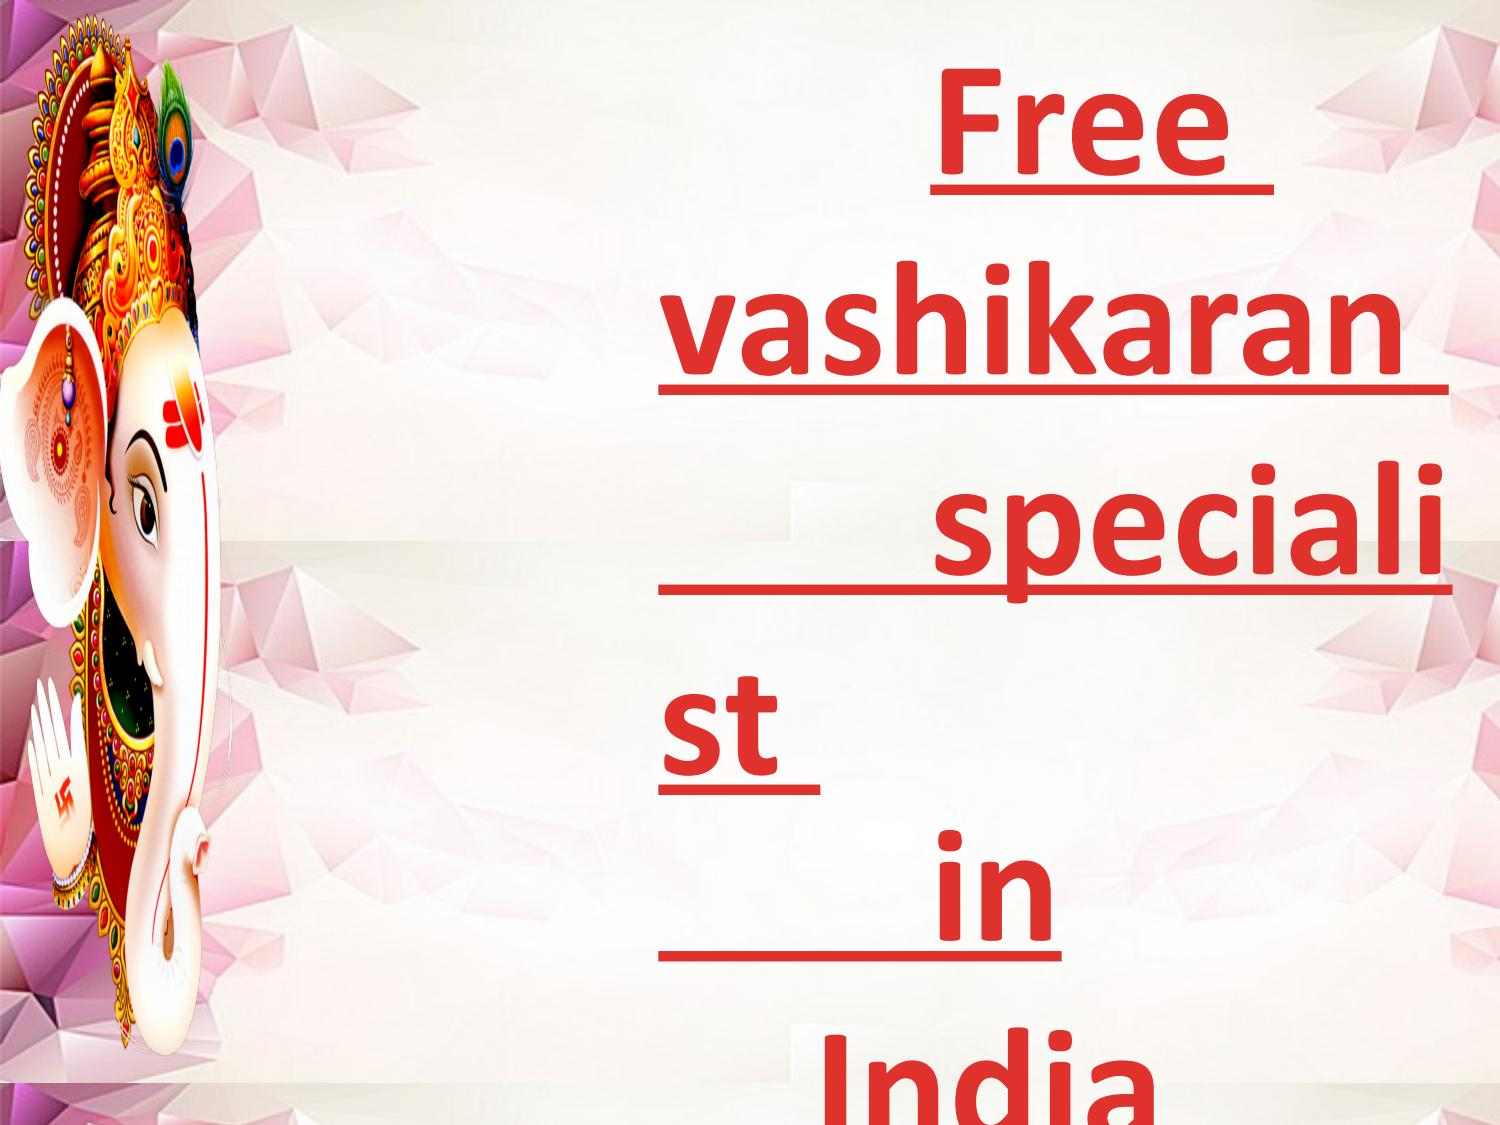 Free vashikaran specialist in India | Totally free